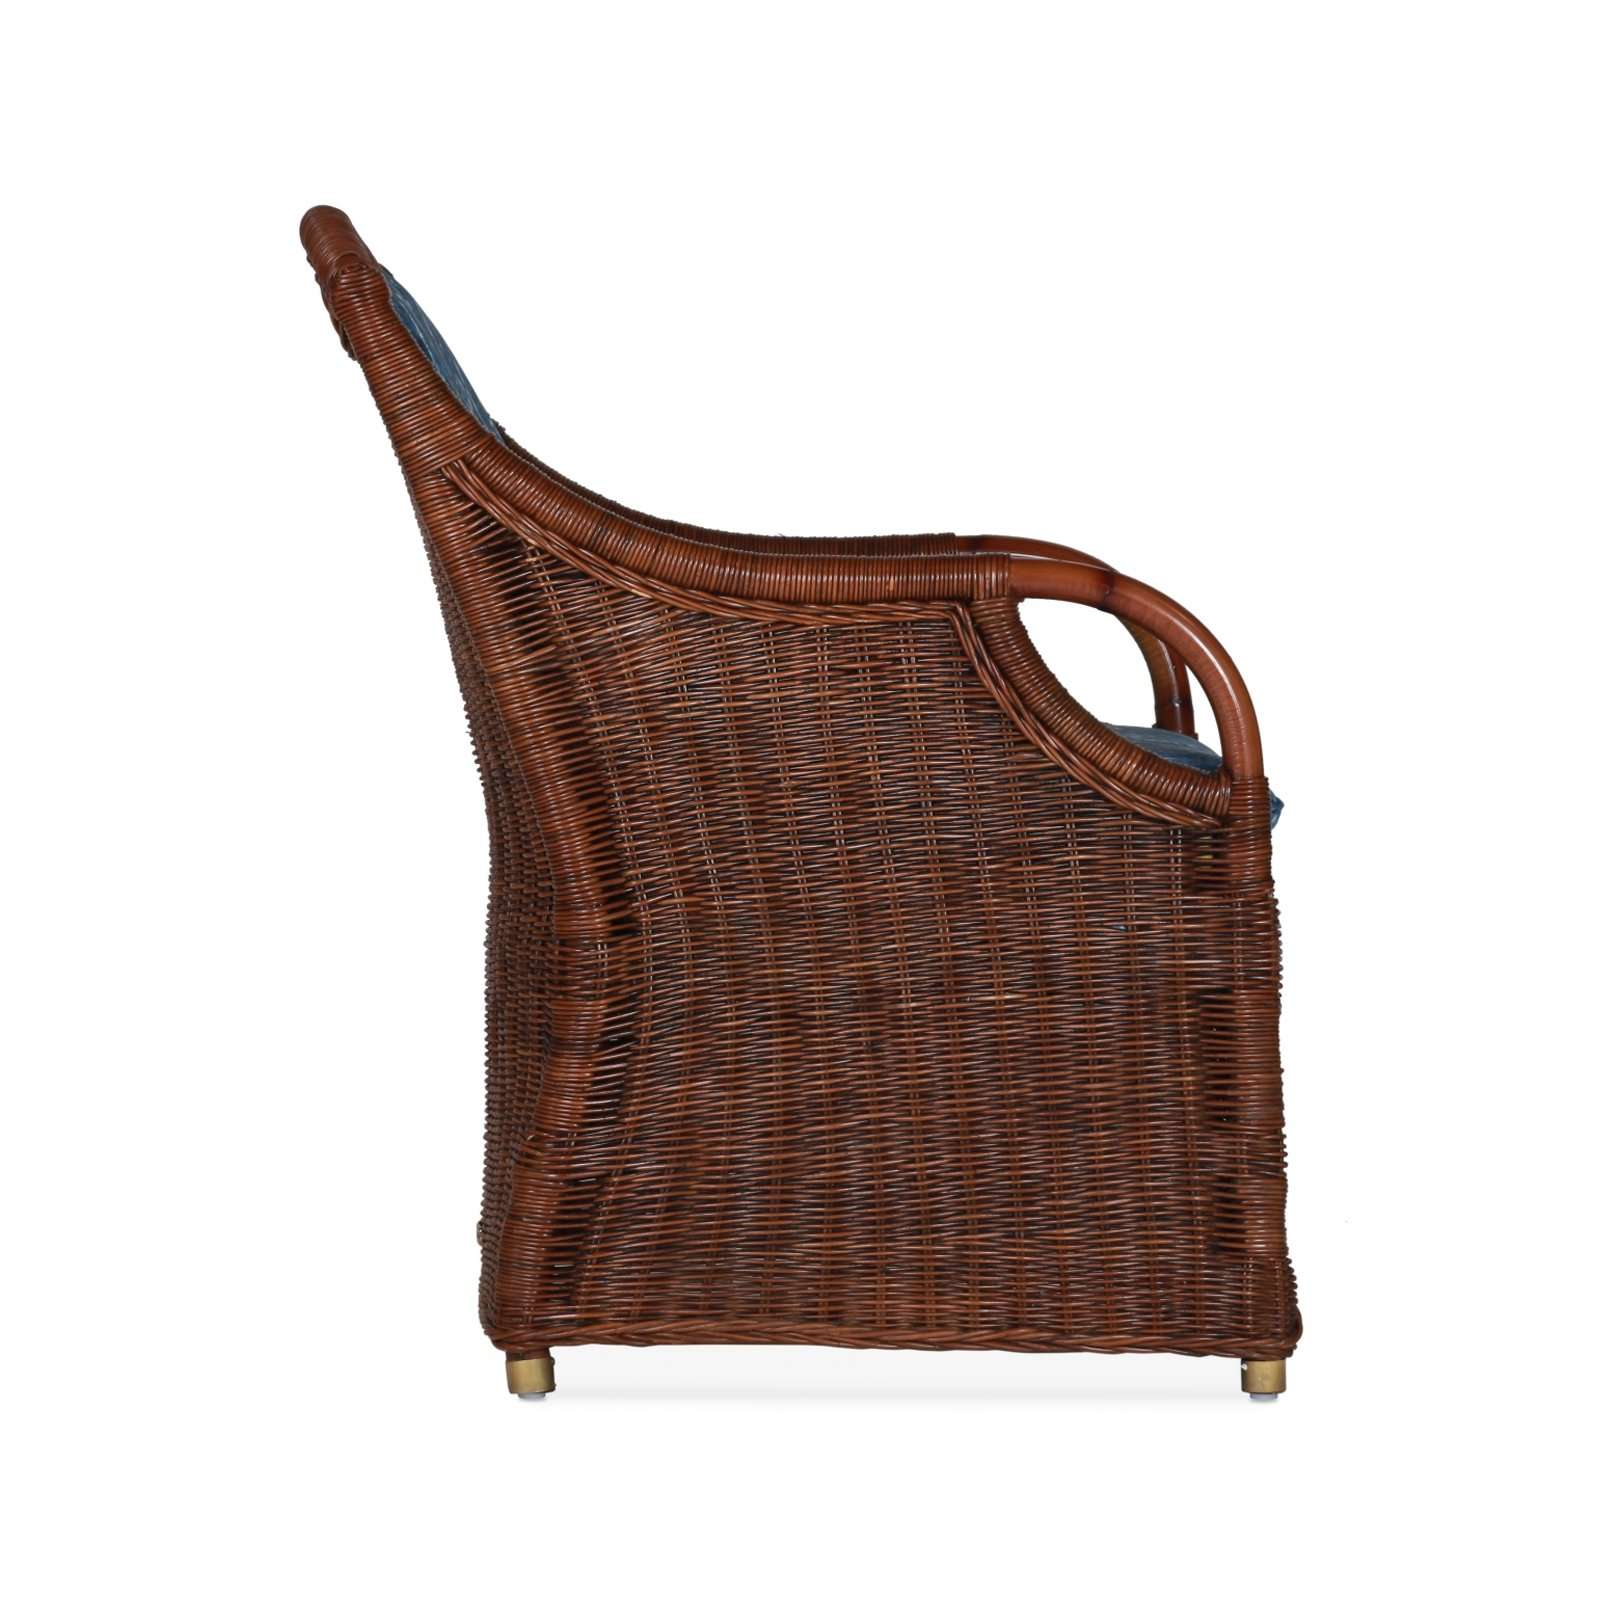 CABANA DINING CHAIR 2 - STUART MEMBERY HOME COLLECTION